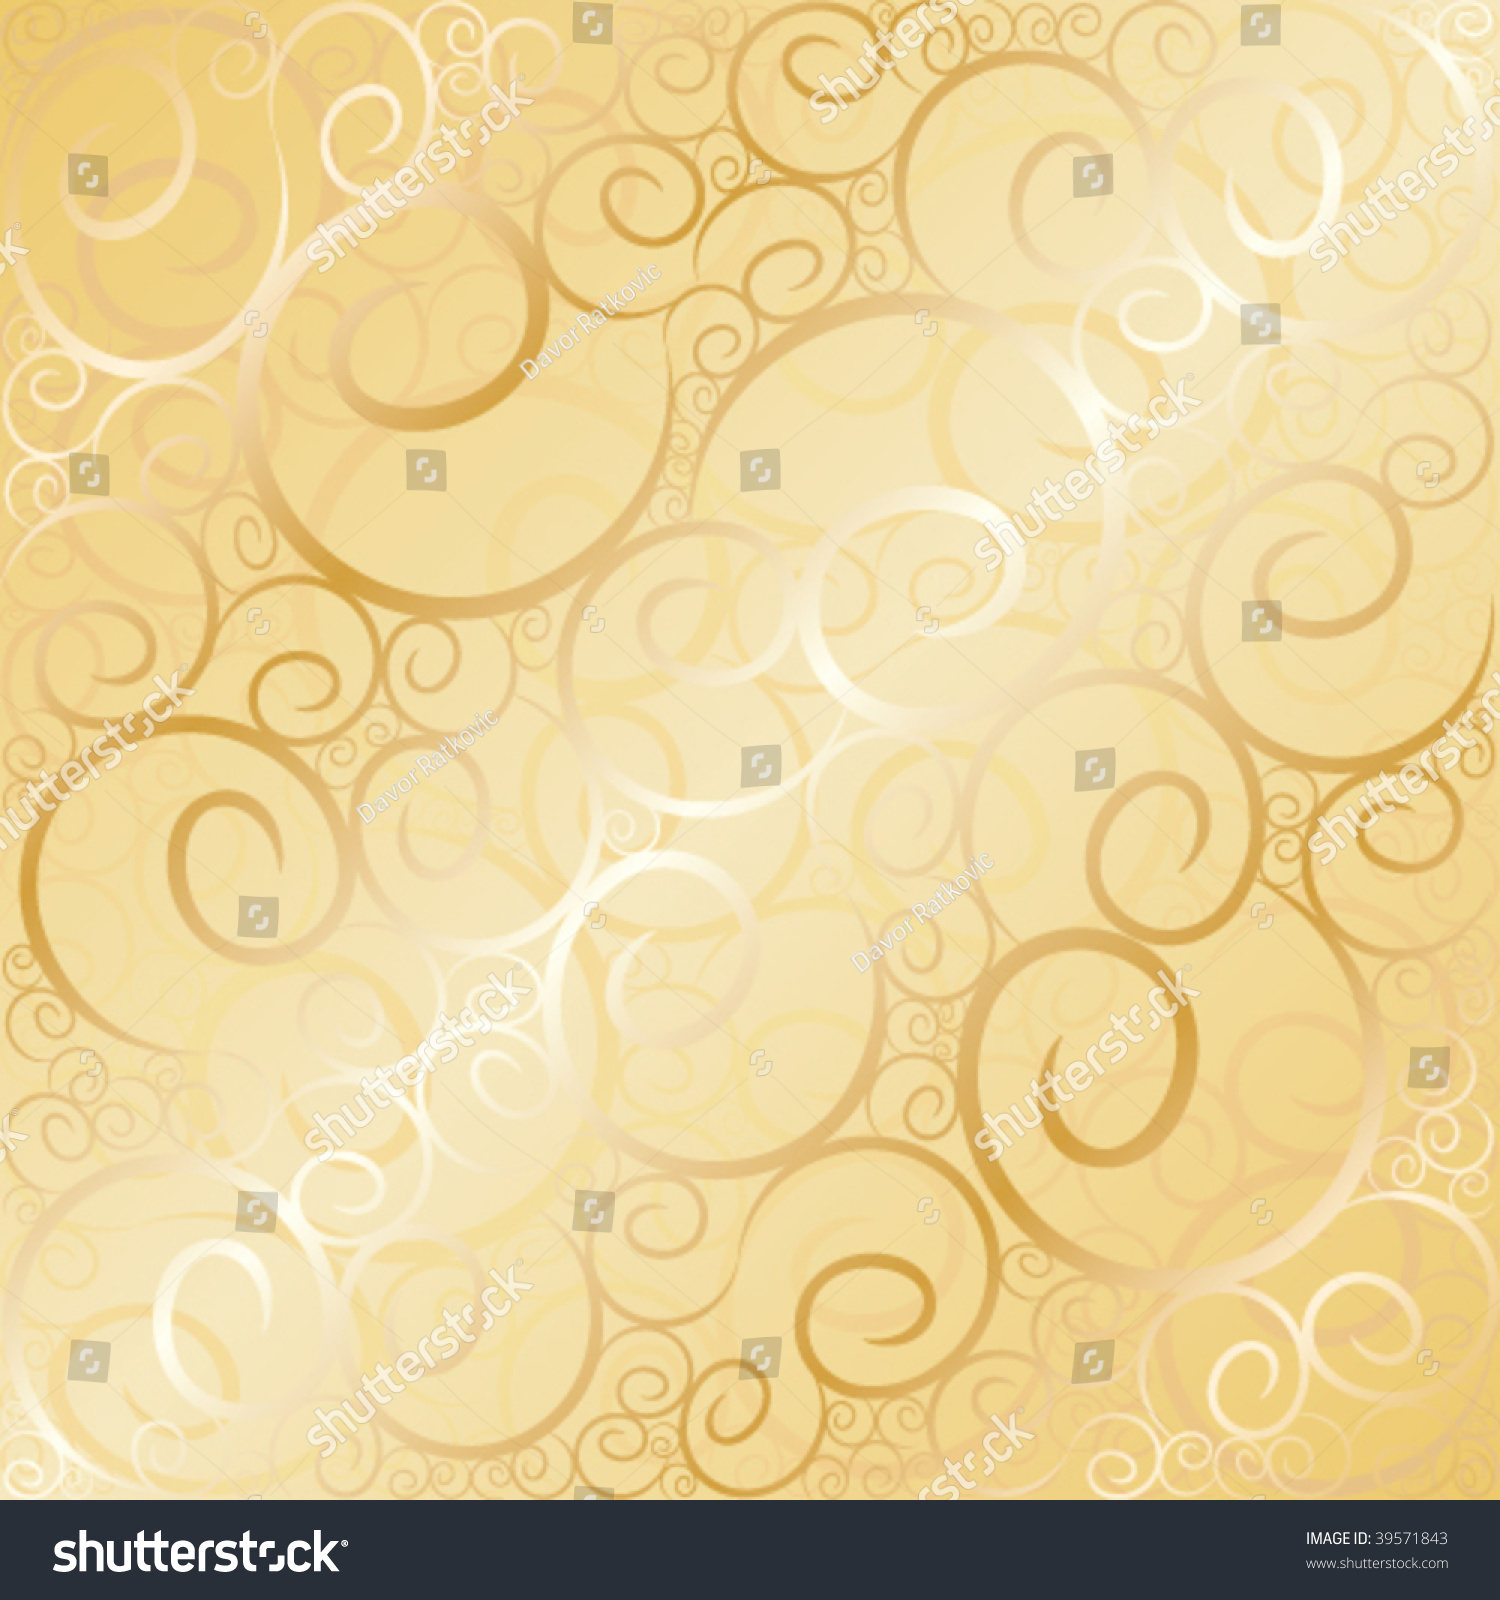 Old Gold Swirl Wallpaper Background Vector Illustration